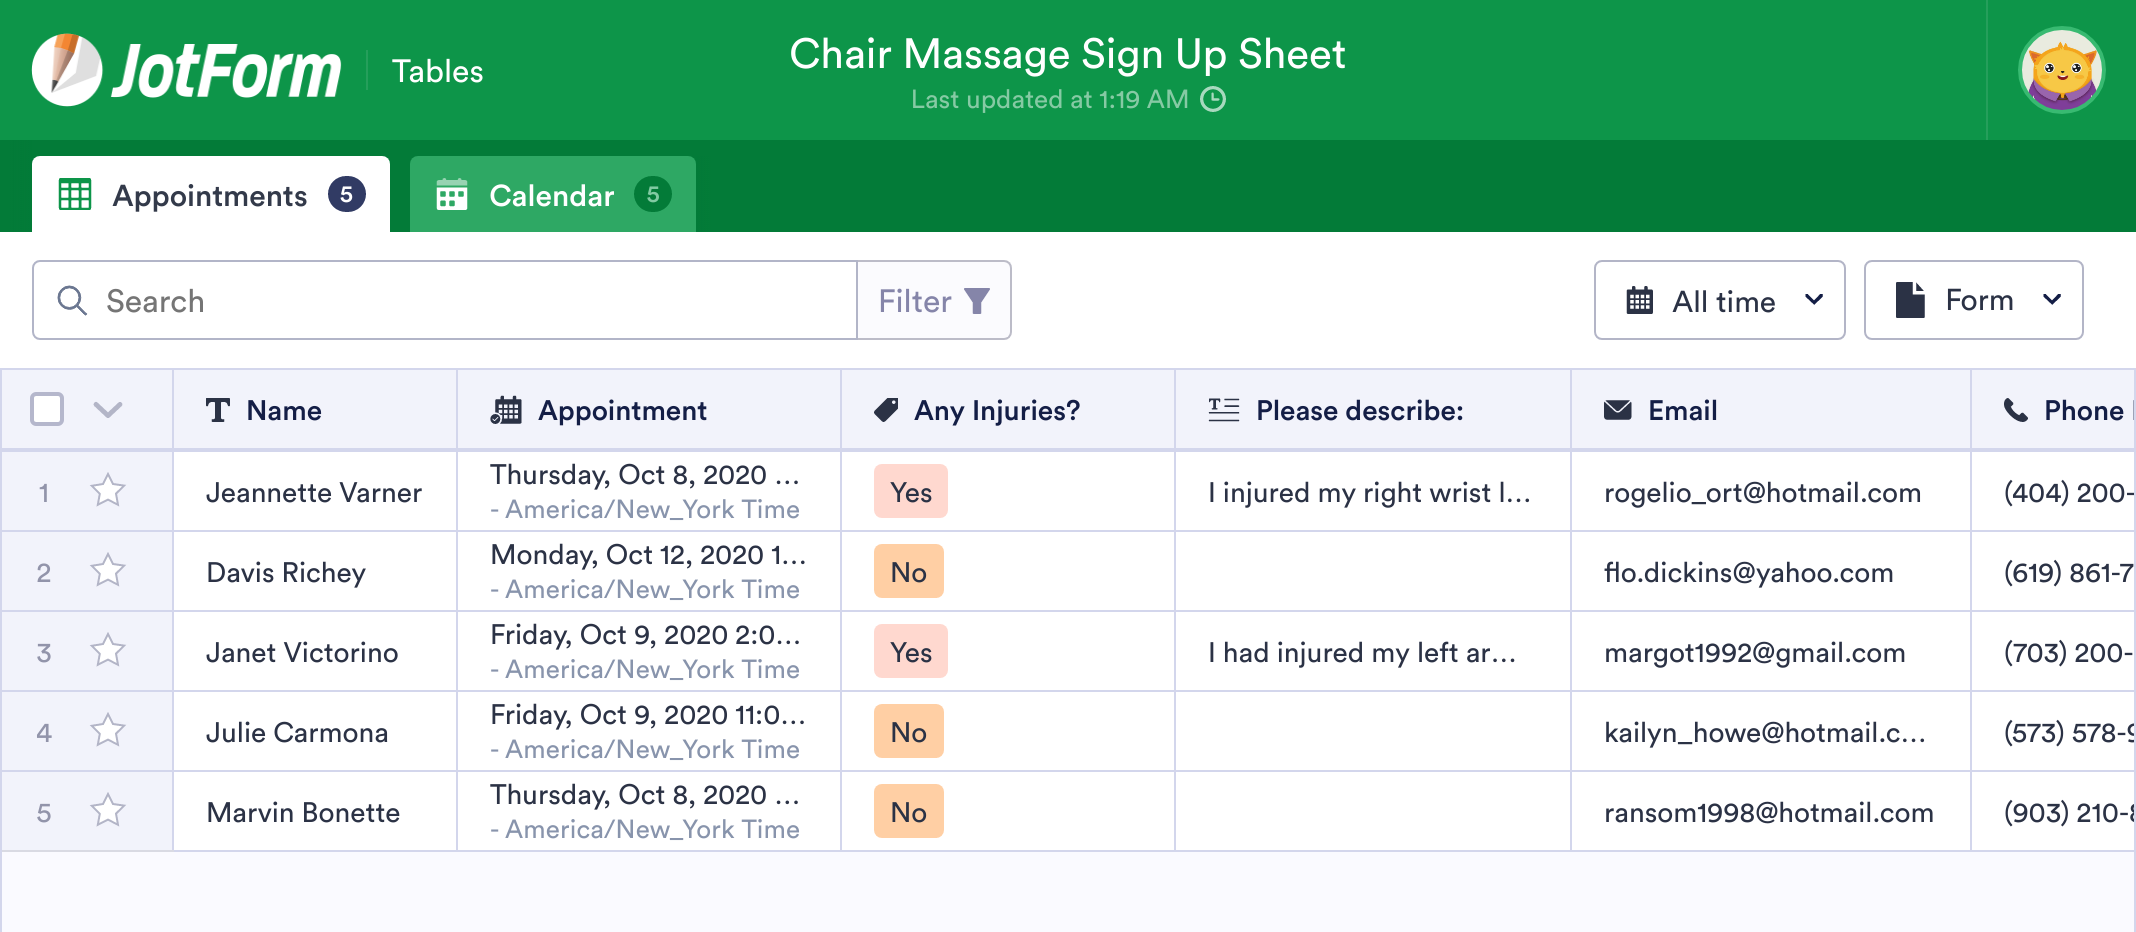 Chair Massage Sign Up Sheet